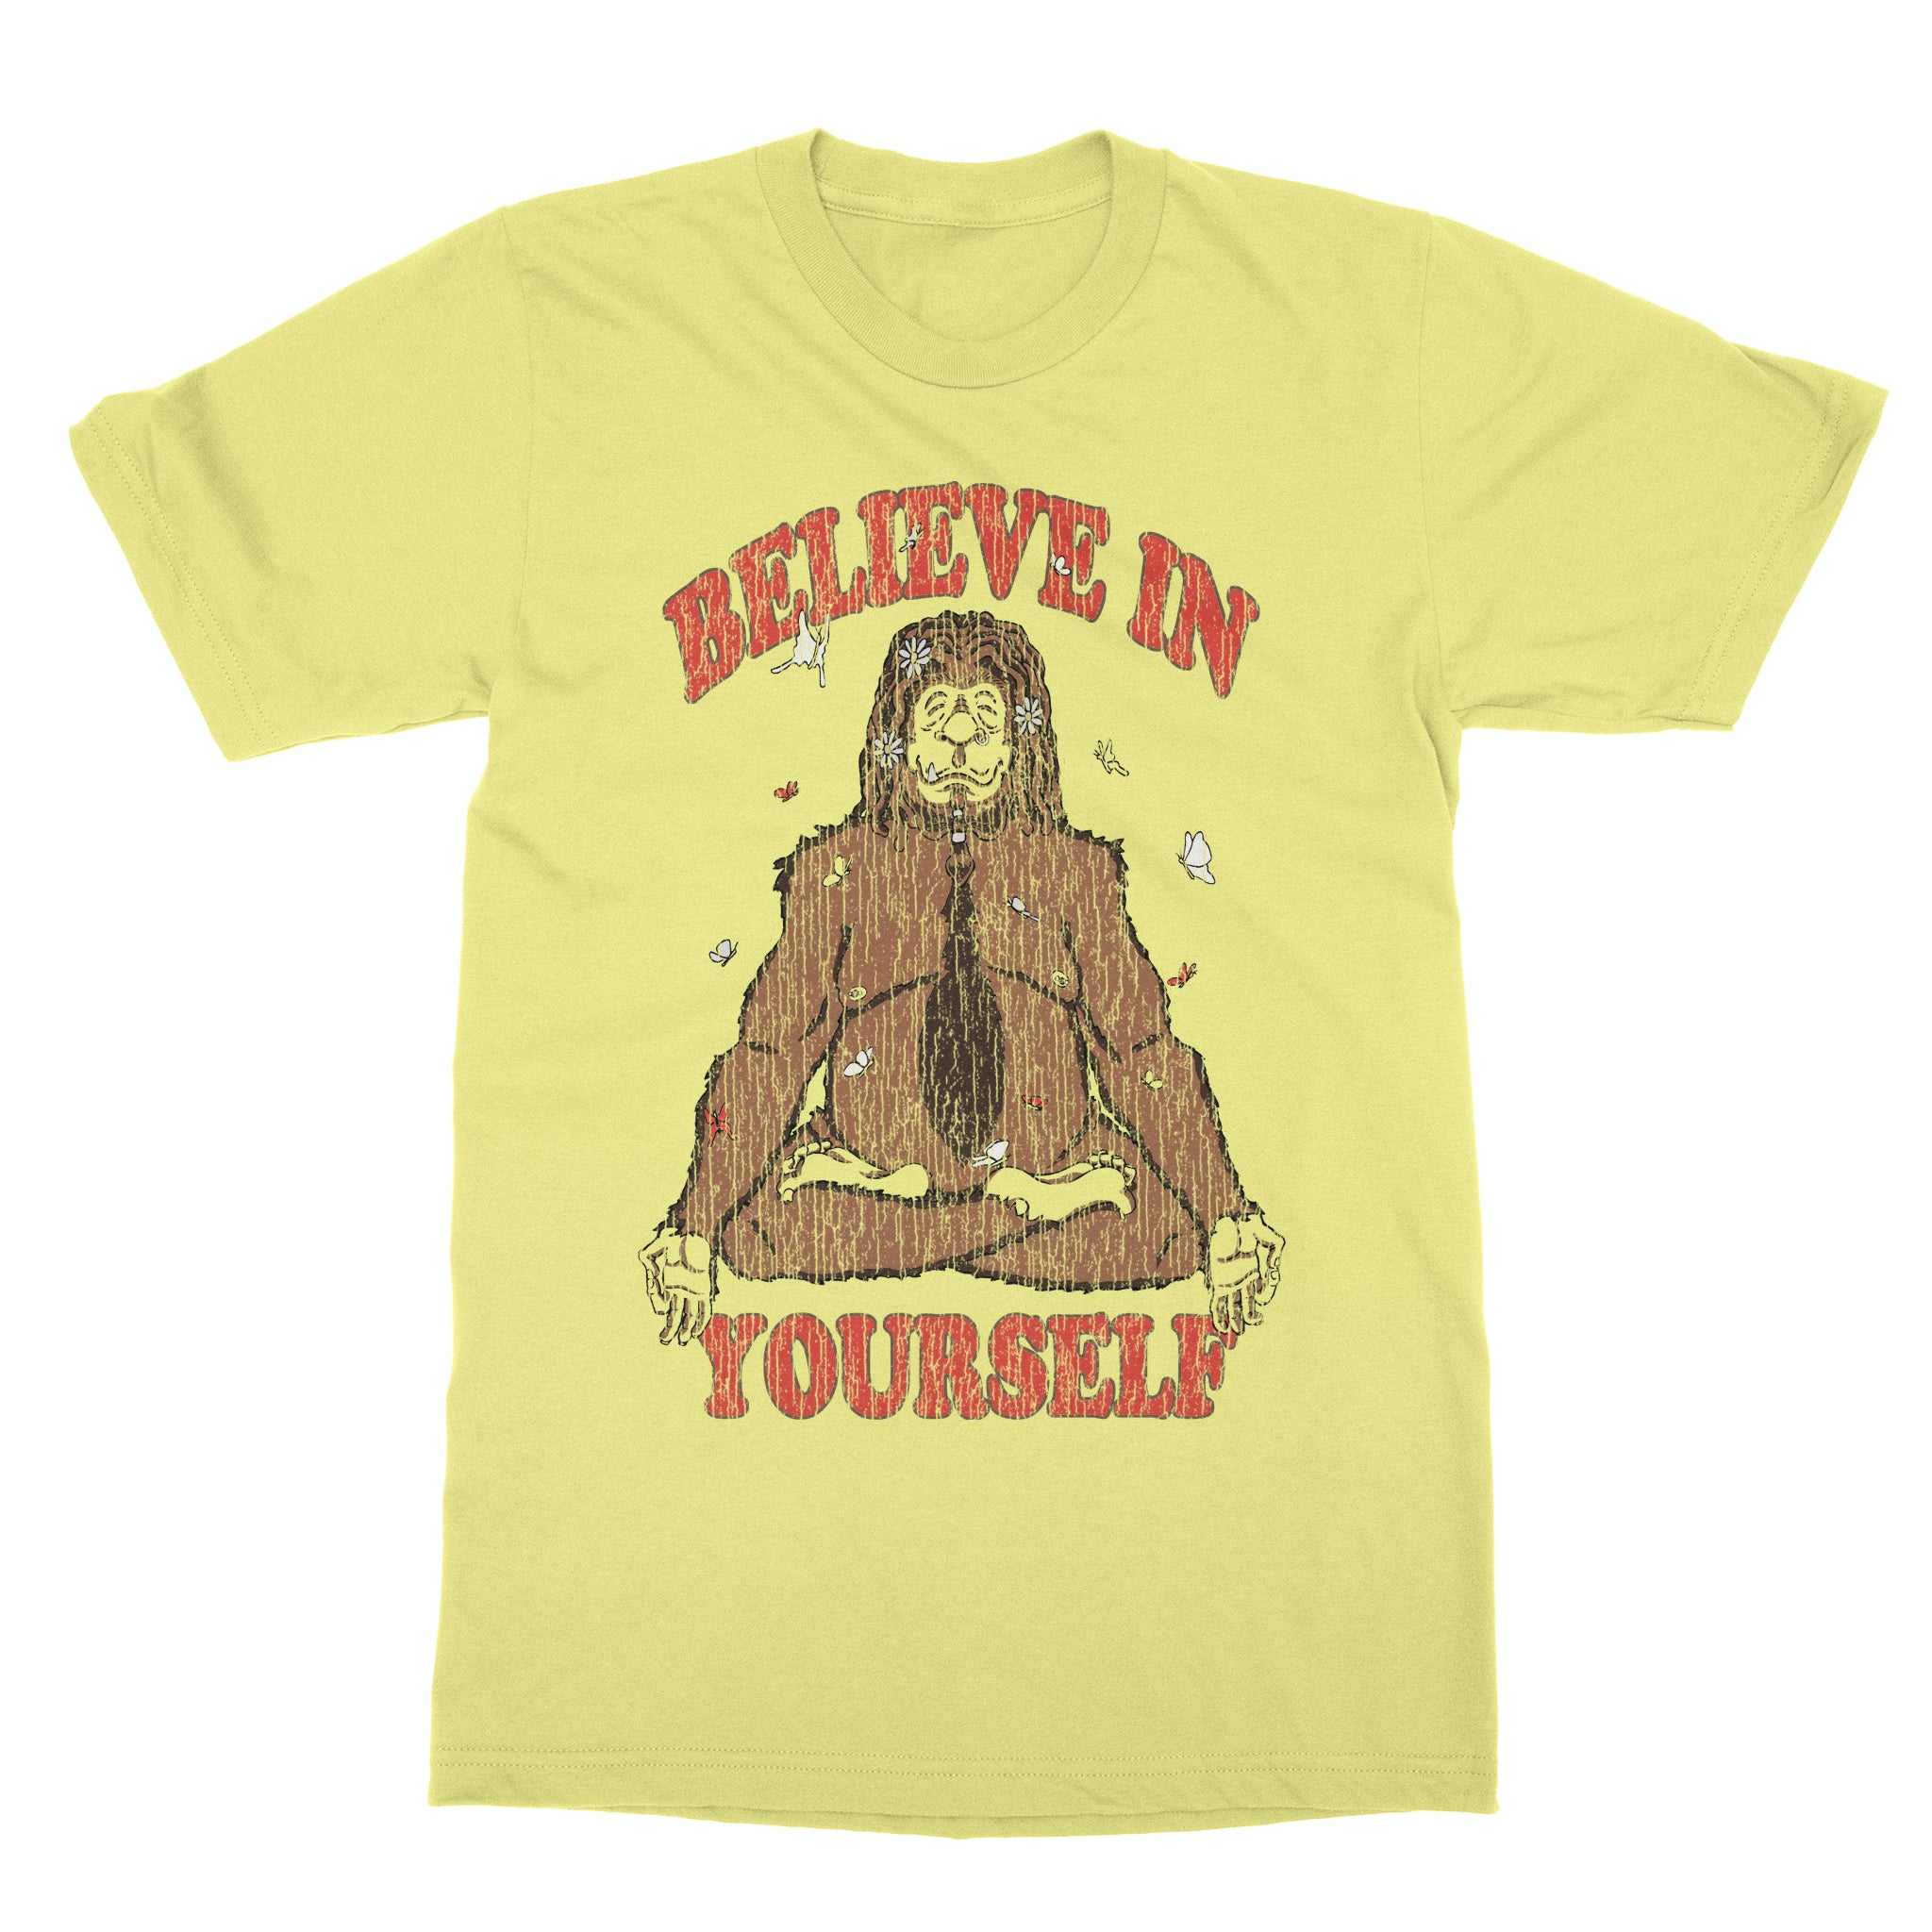 Believe In yourself  - Golden Maize Shirt